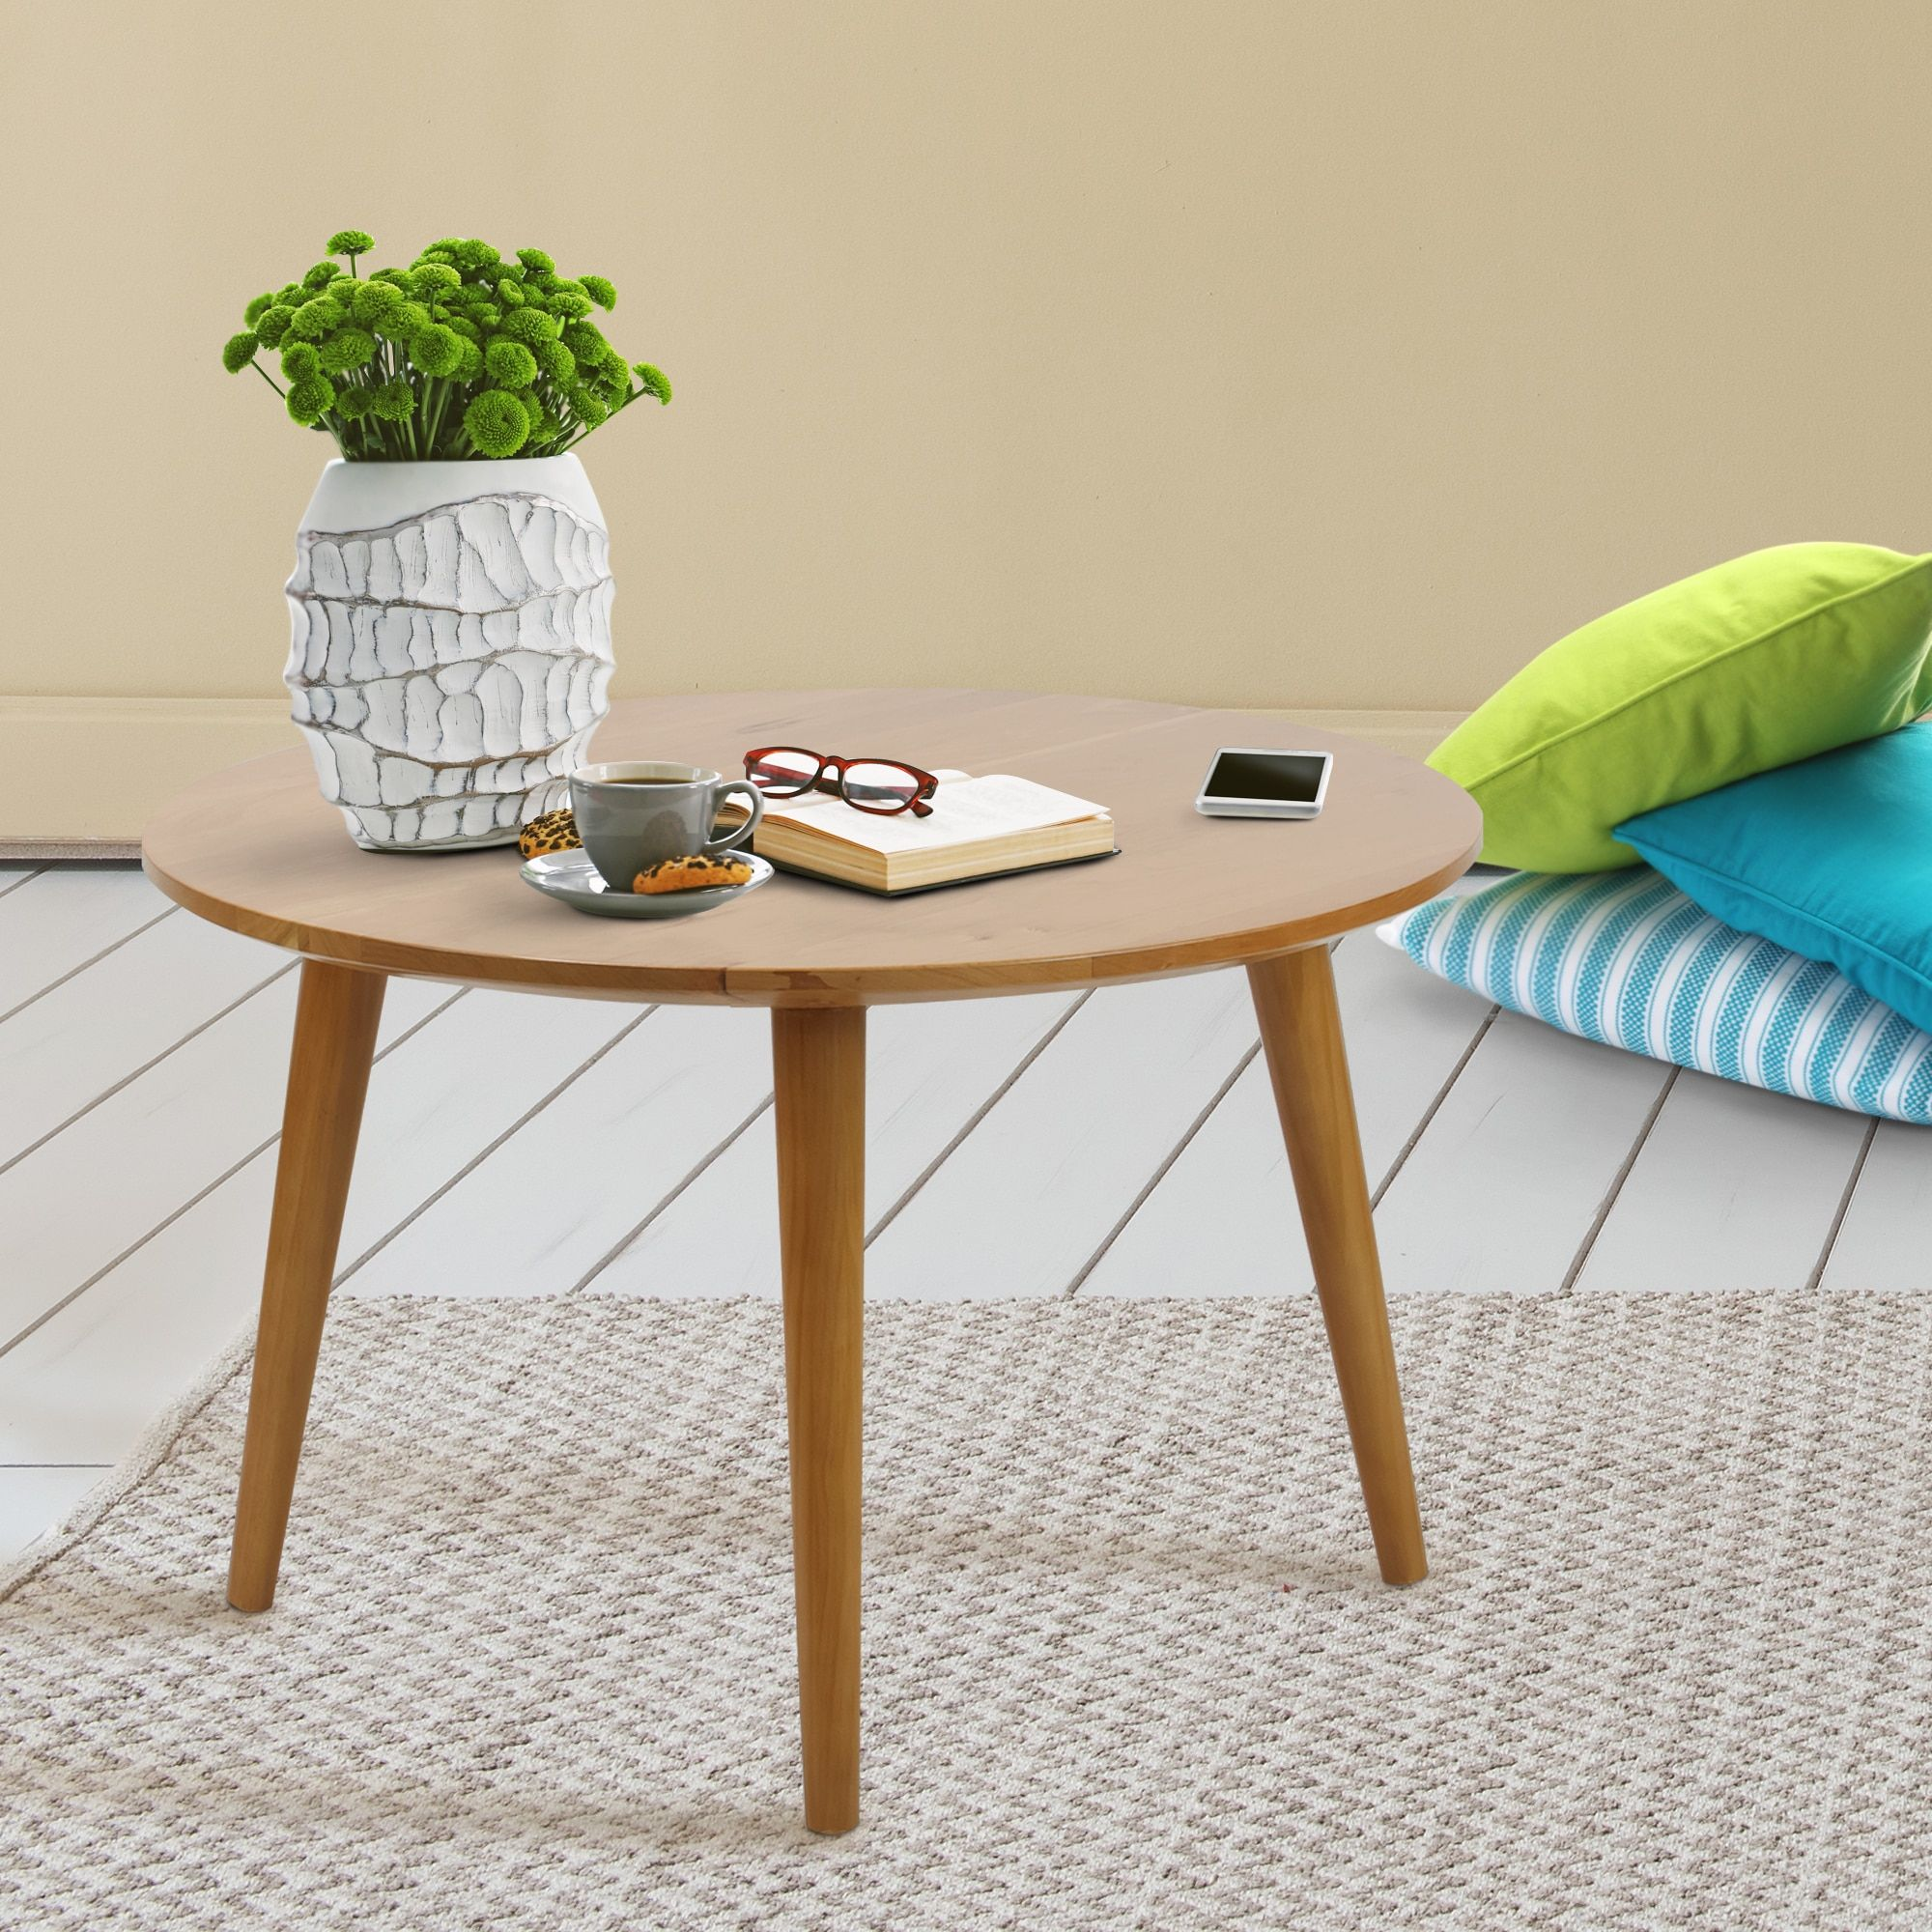 Mid century coffee table home goods free shipping on orders over mid century coffee table home goods free shipping on orders over 45 at overstock geotapseo Image collections